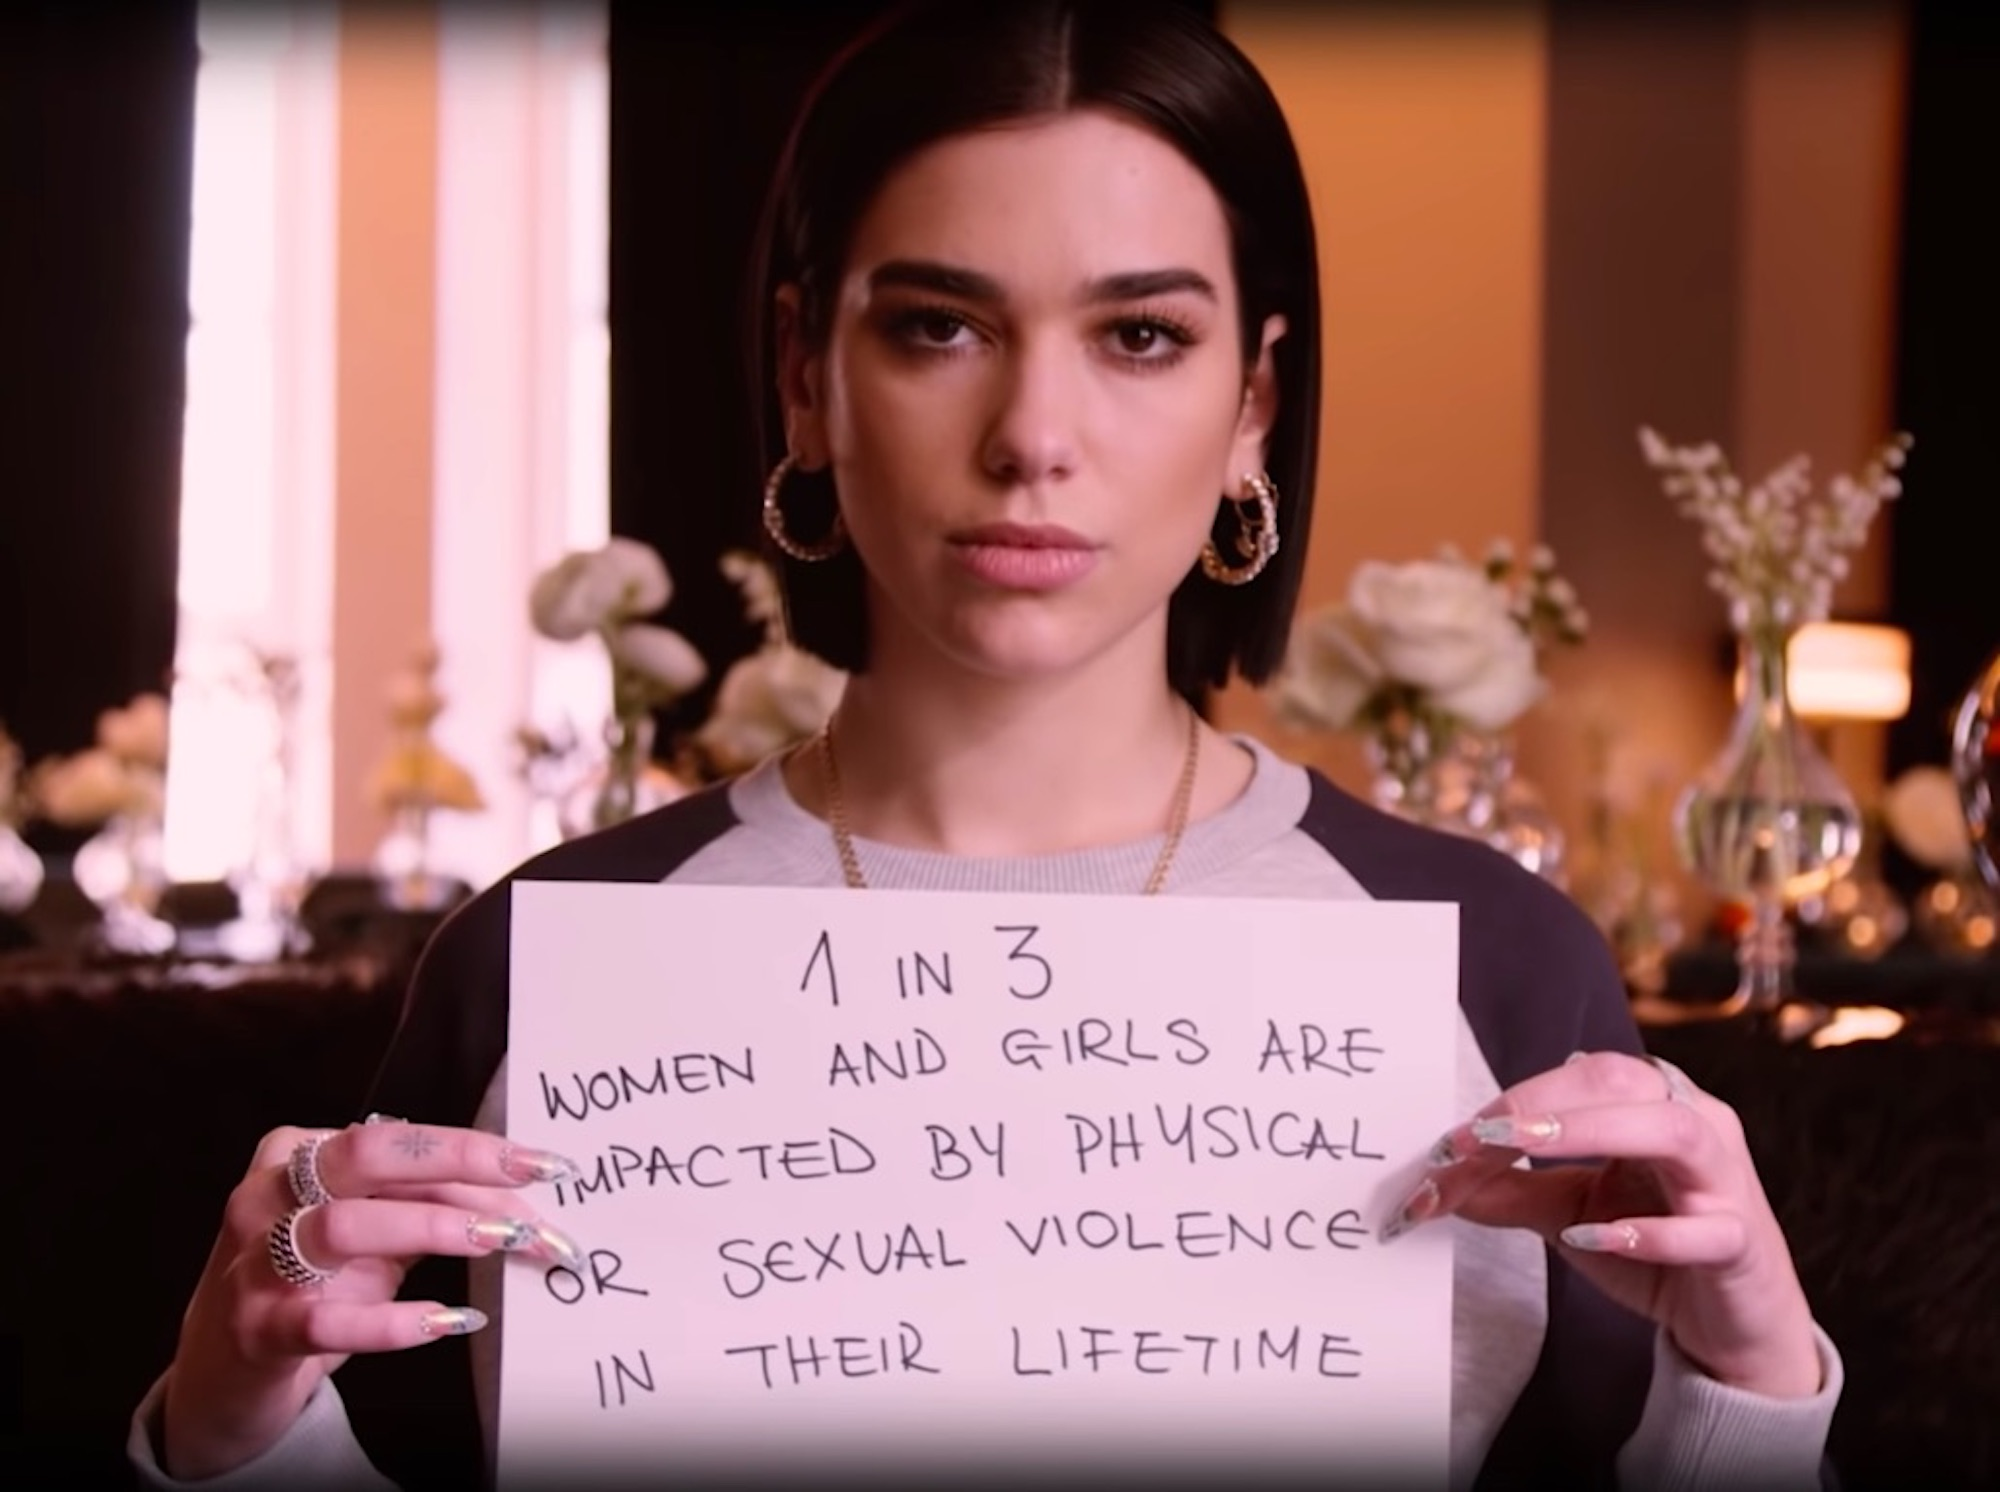 Dua Lipa for International Women's Day